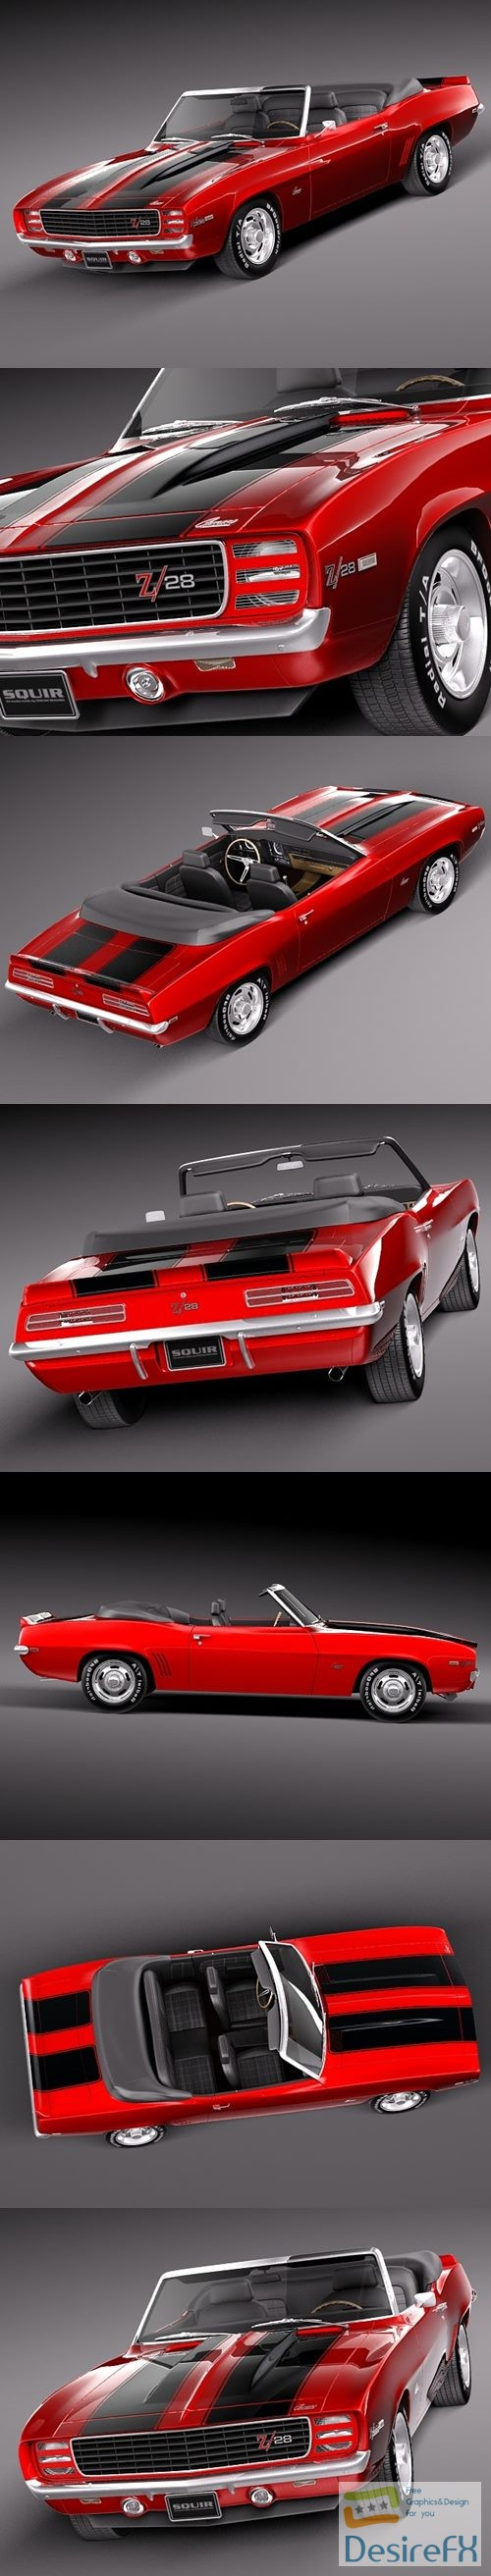 3d-models - Chevrolet Camaro 1969 Z28 cabrio 3D Model